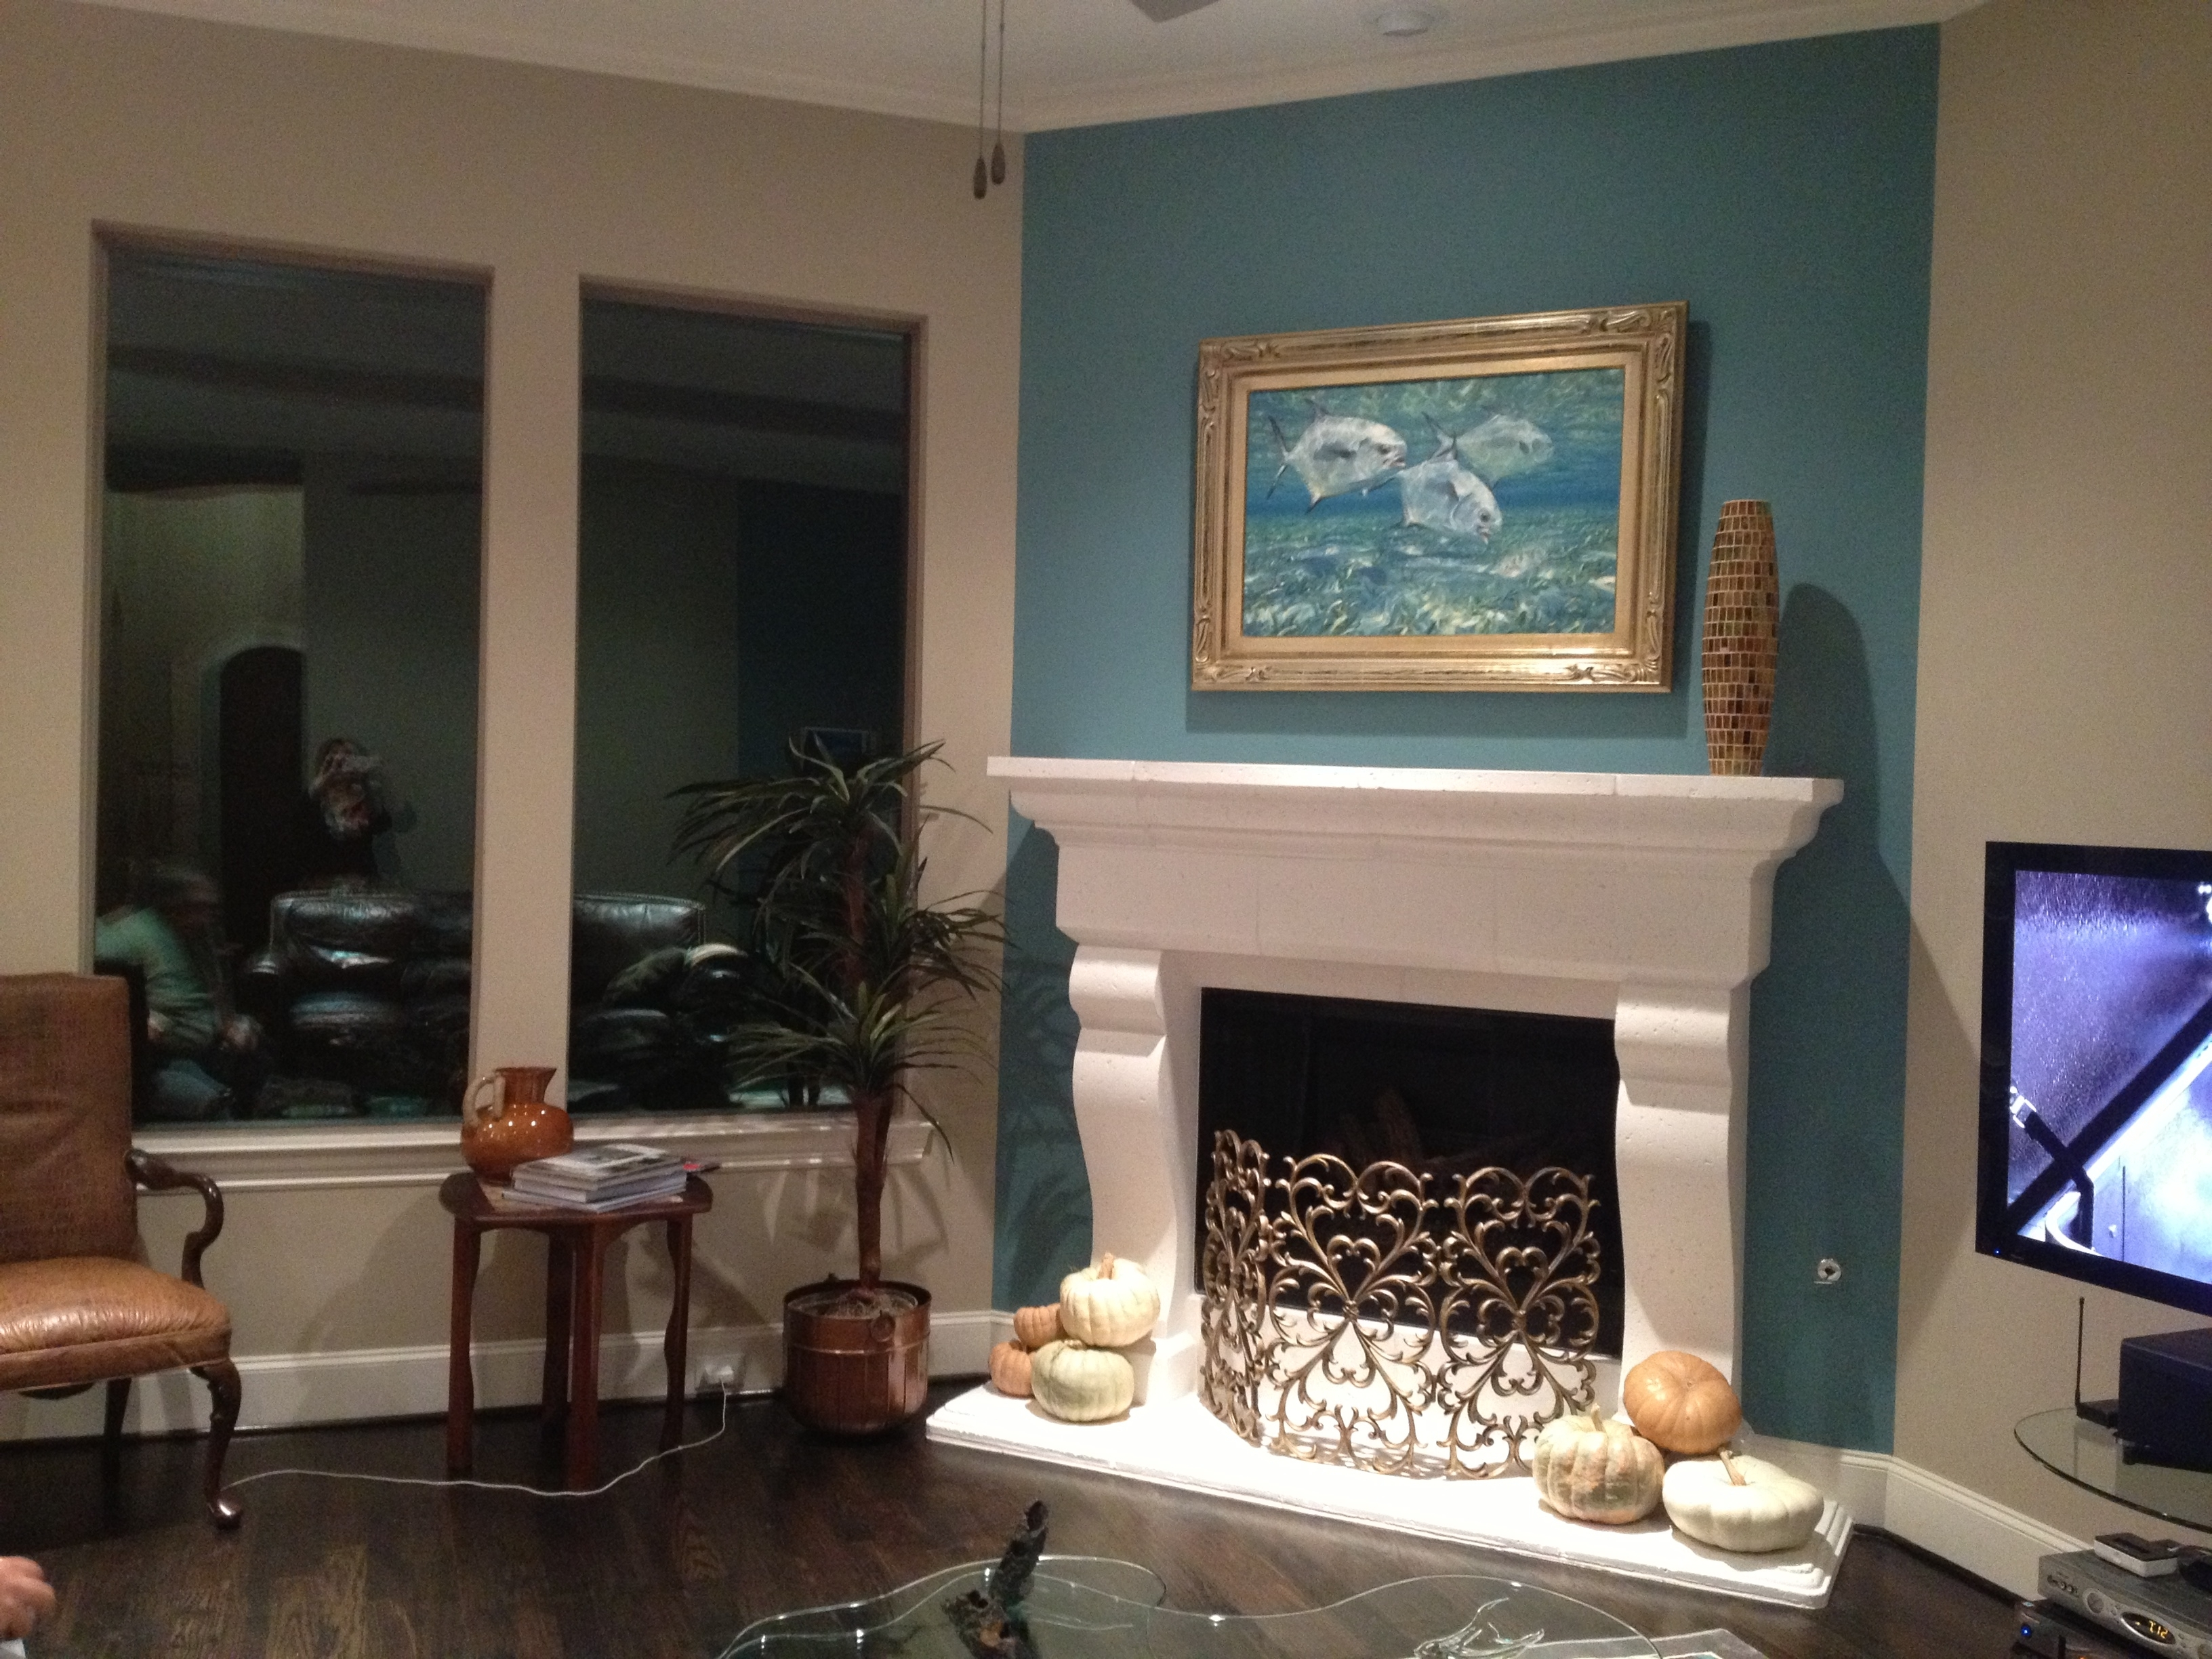 Fireplace Accent Wall Complements Painting (View 7 of 15)